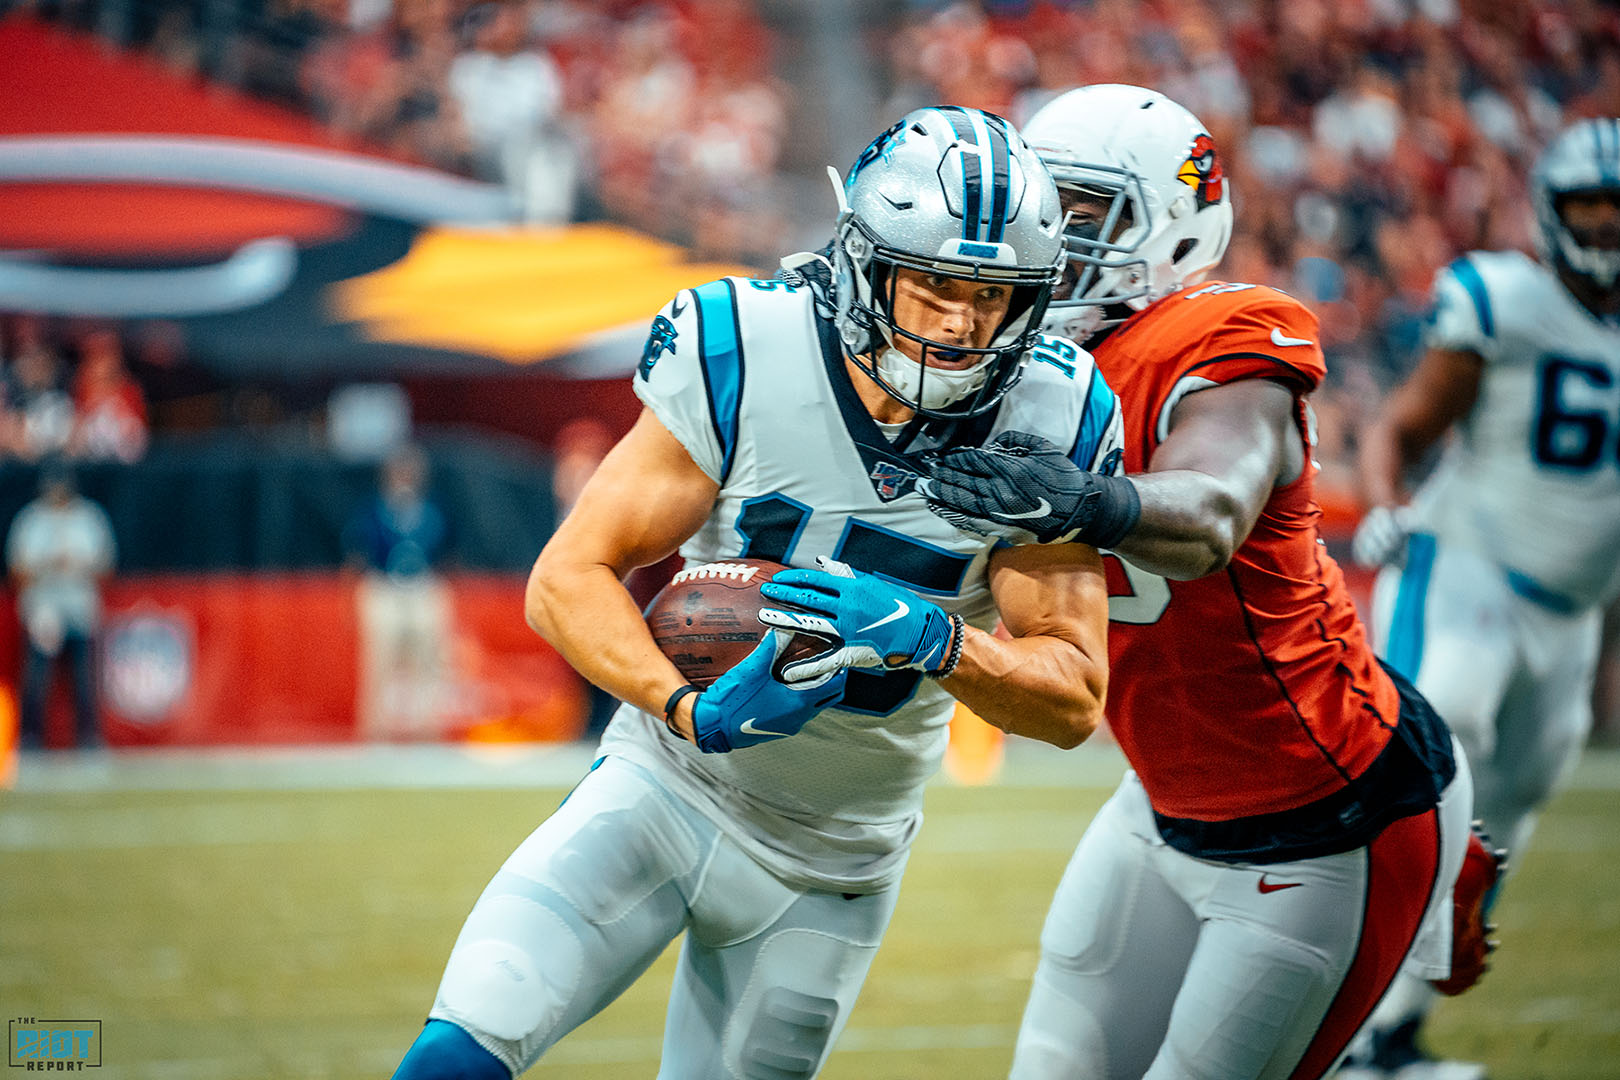 Panthers Place WR Chris Hogan On Injured Reserve